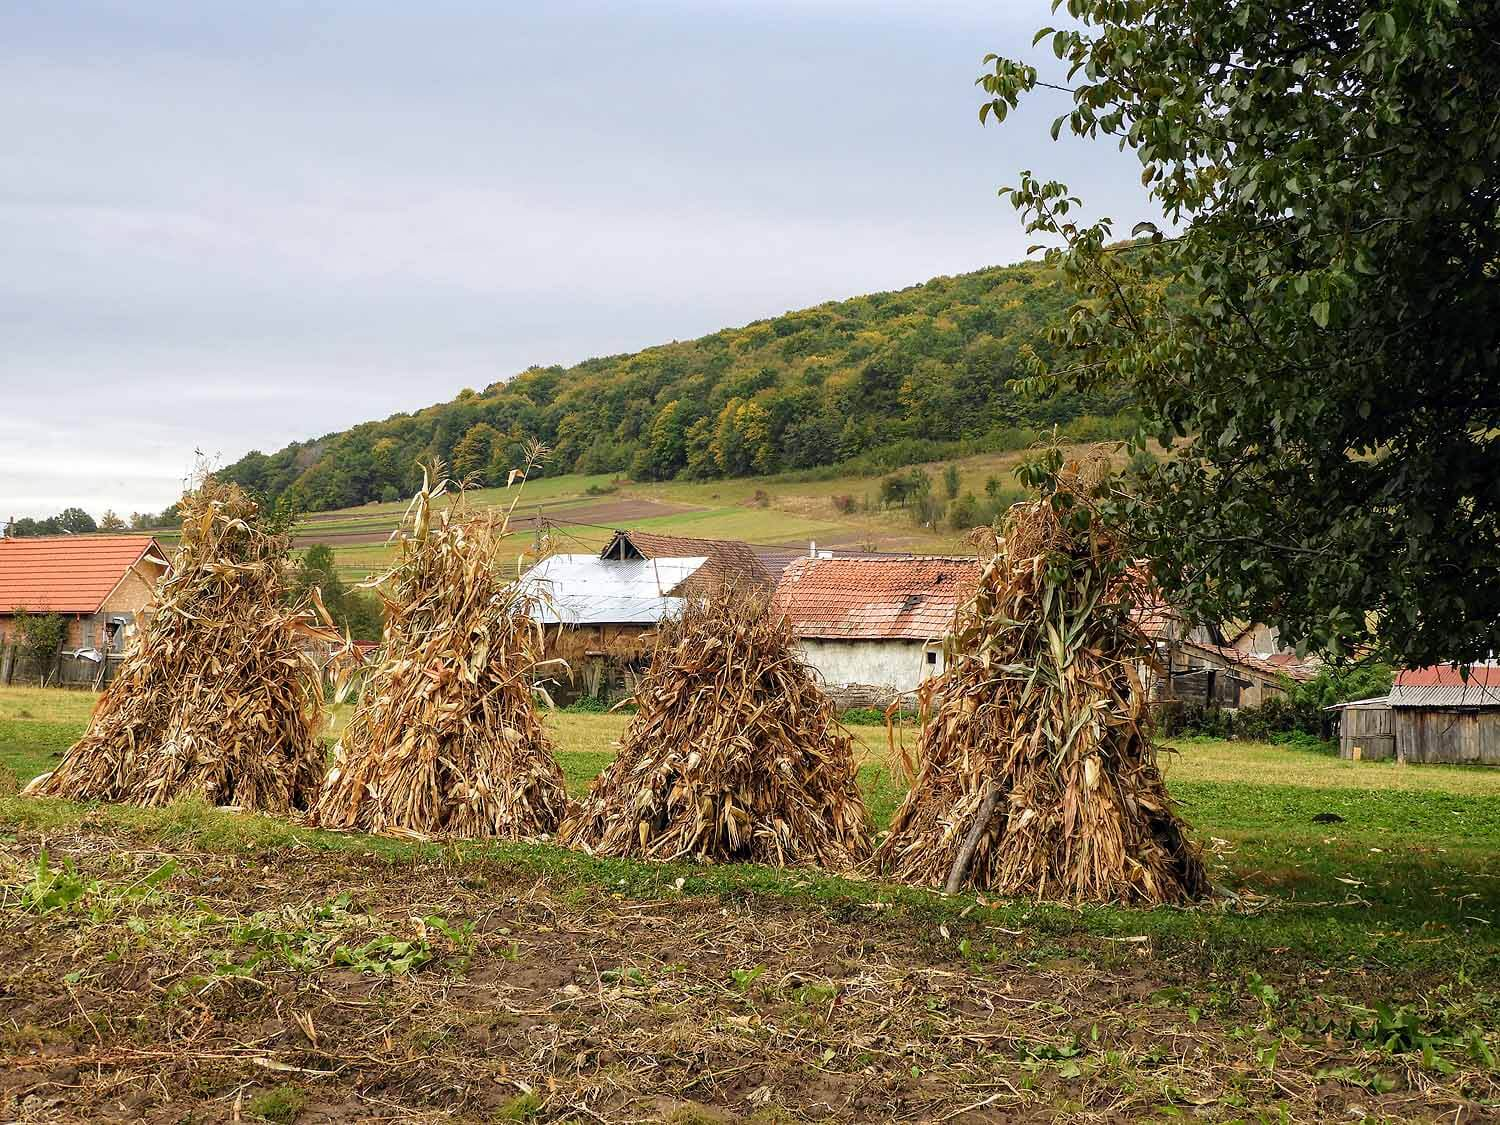 romania-valcele-farm-fields-fall-harvest.jpg